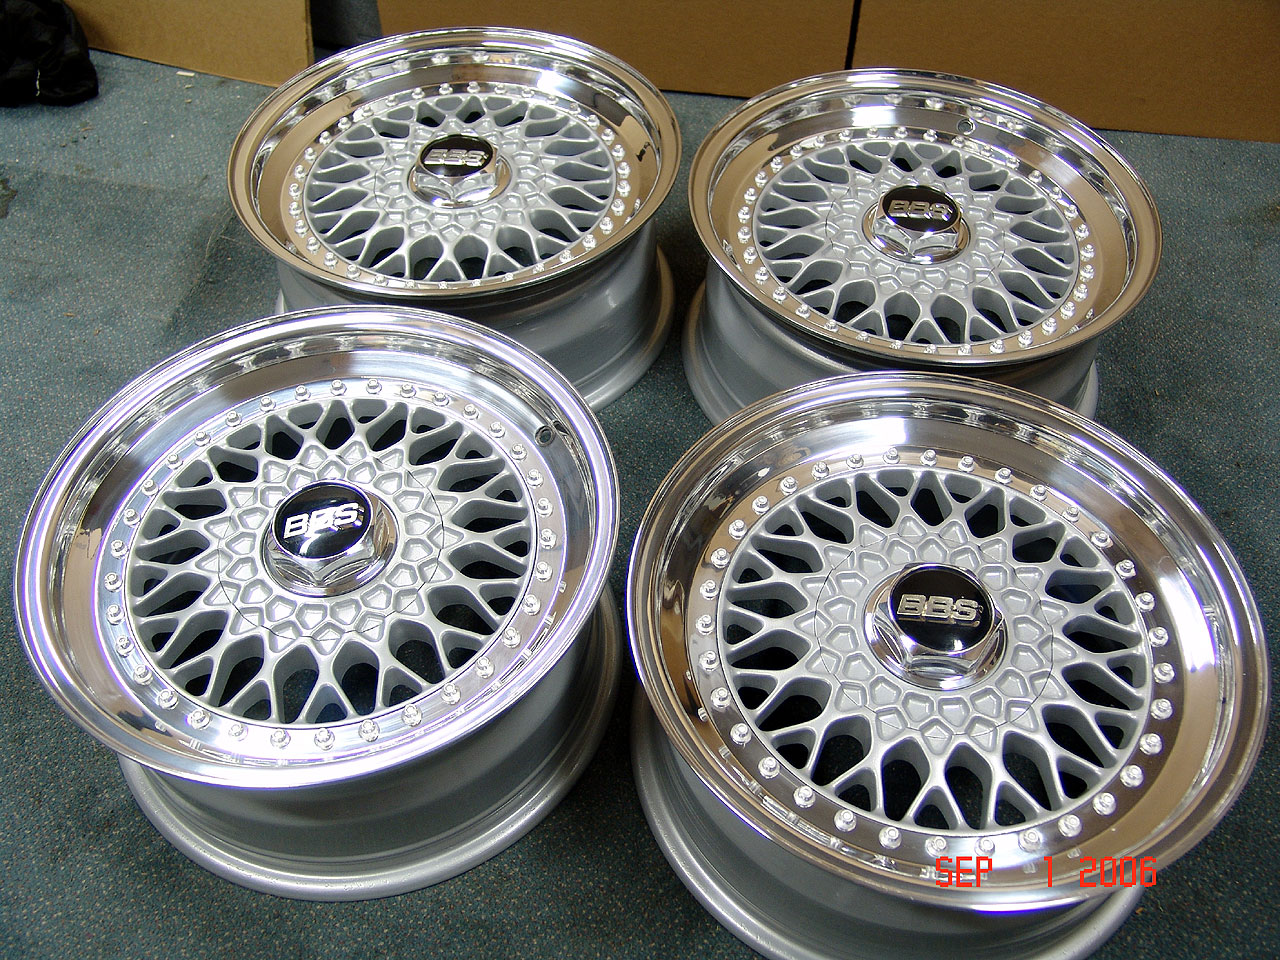 set of wheels on an e28 or